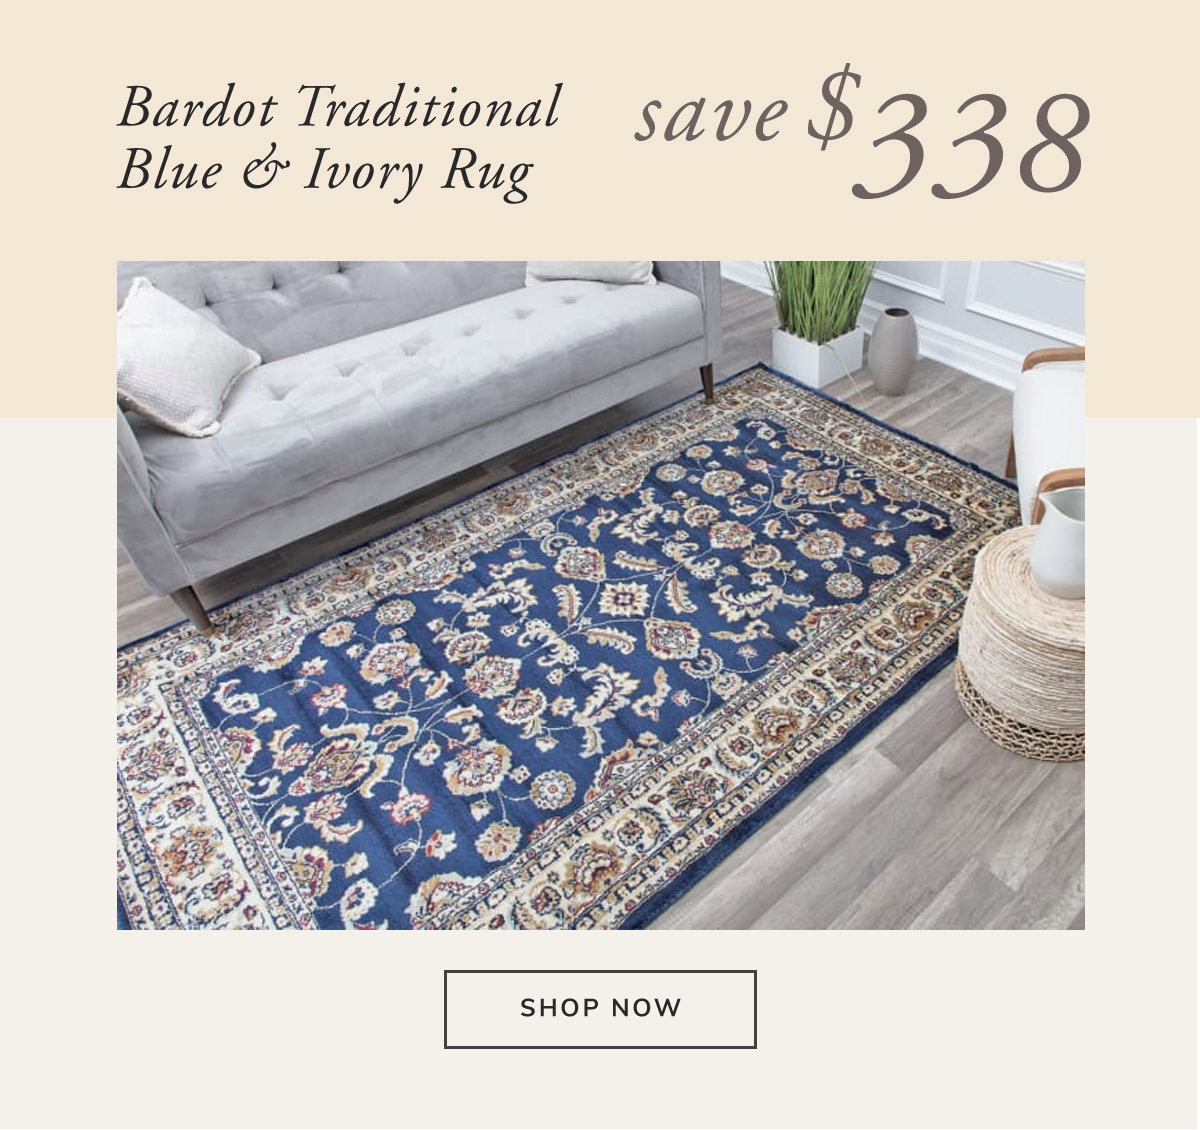 Bardot Transitional Traditional Blue and Ivory Rug. Save $338 | SHOP NOW